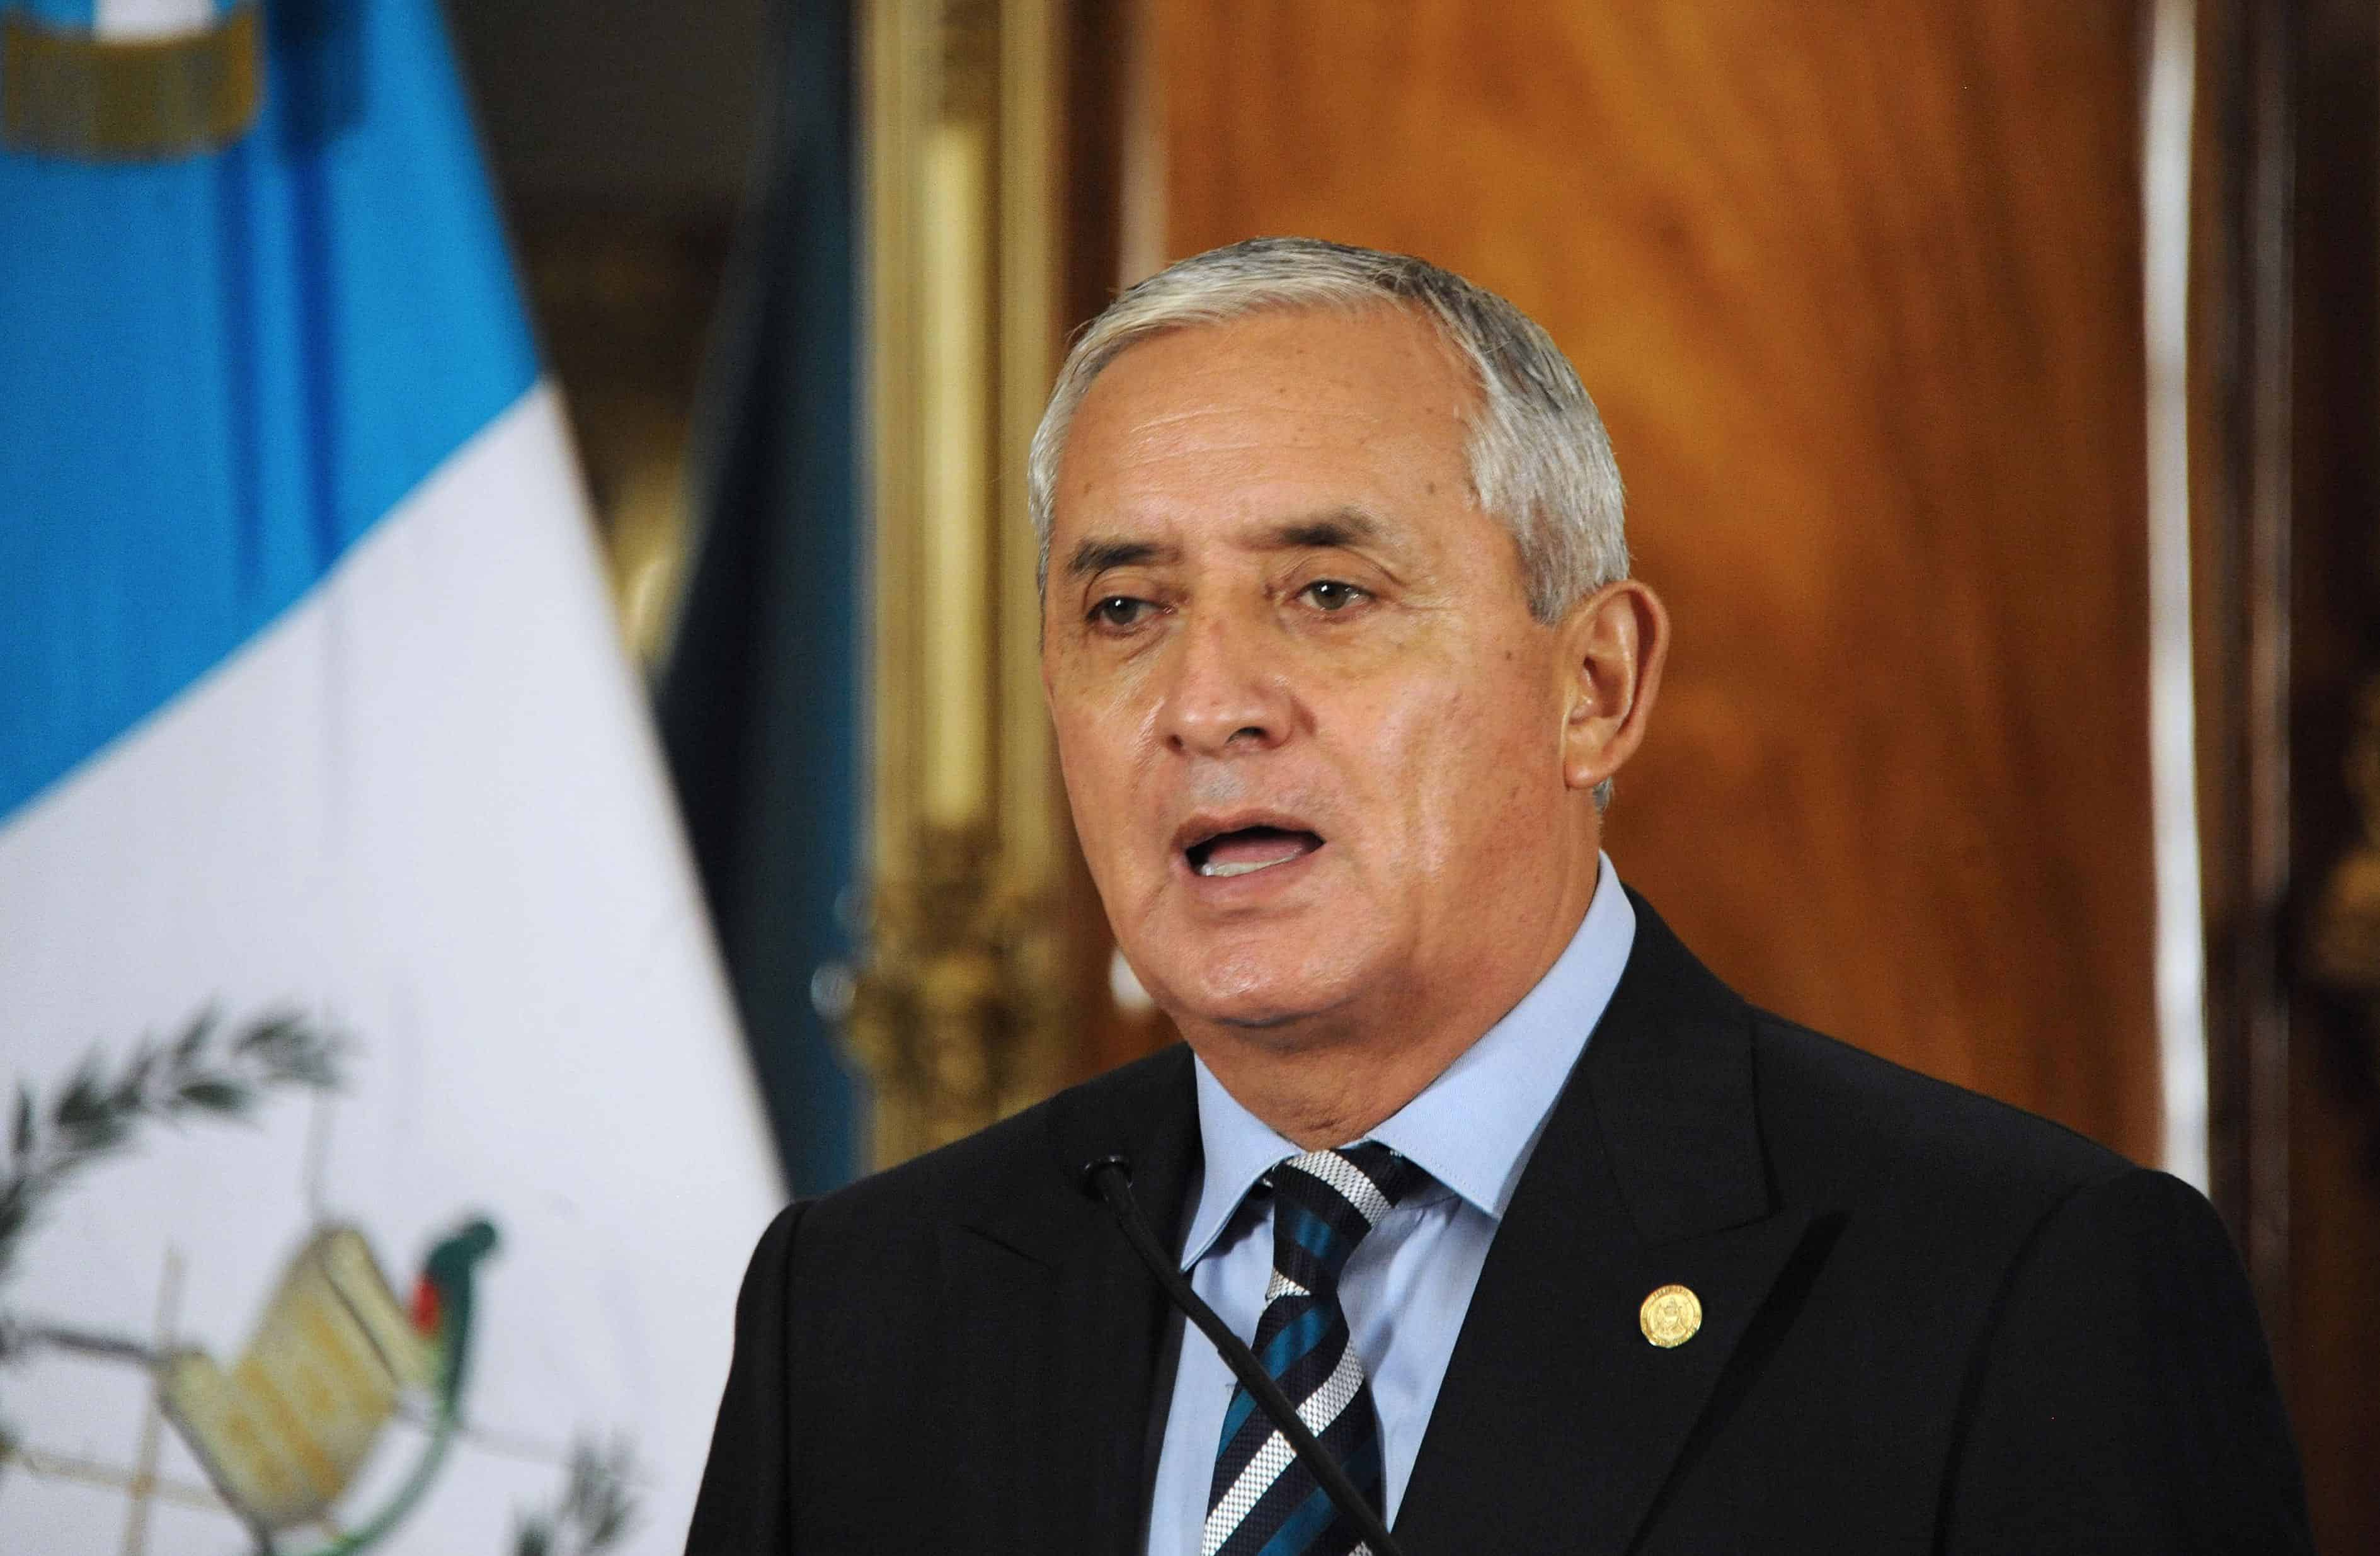 Guatemalan President Otto Pérez Molina offers a press conference at the presidential palace in Guatemala City on May 21, 2015.